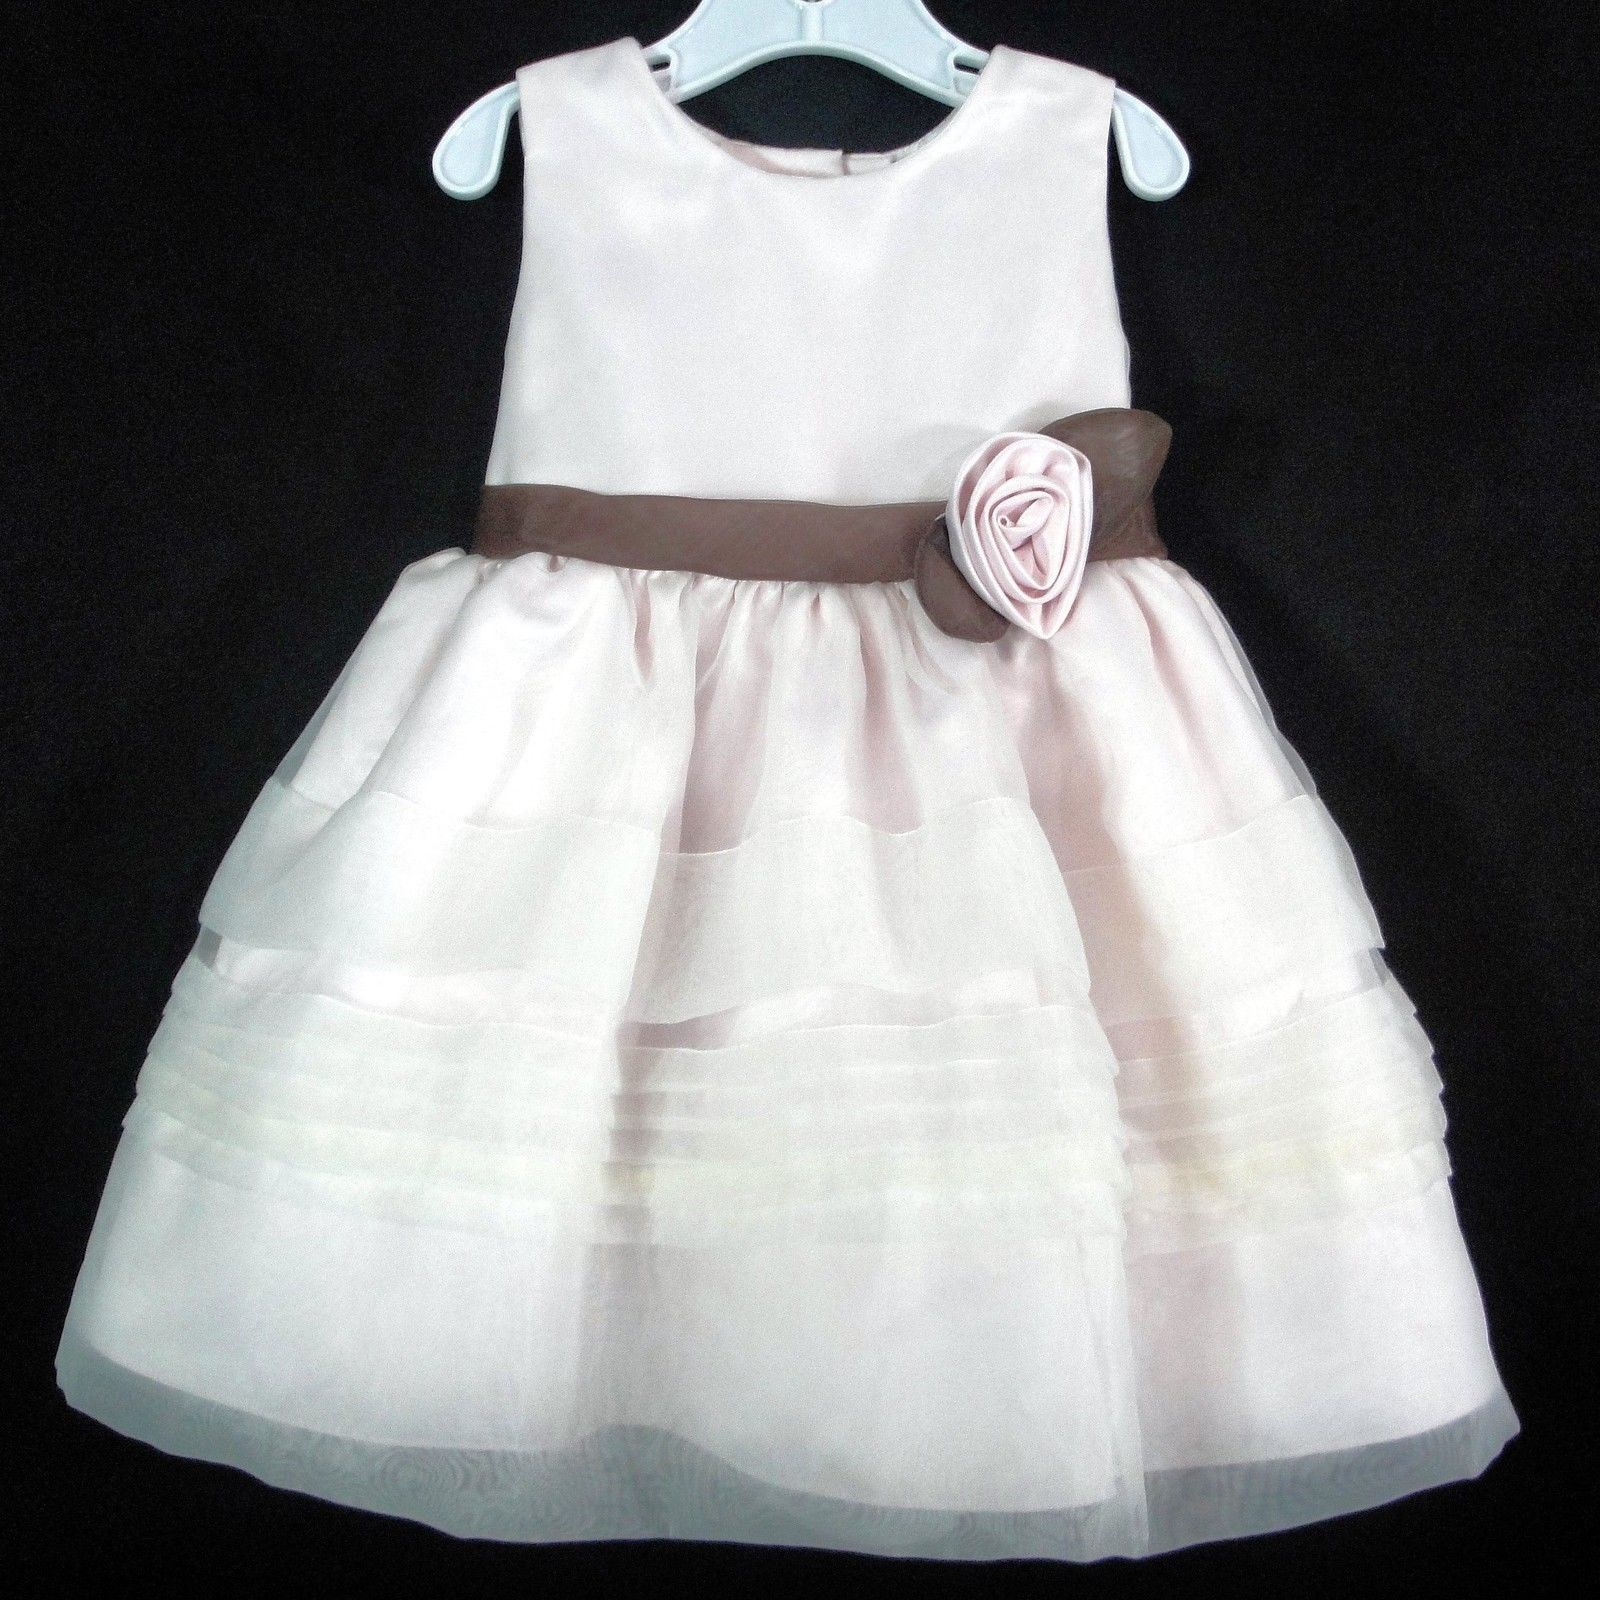 Primary image for Toddler Easter Dress Dressy Occasion Holiday Wedding Pale Pink Rare Editions 18M